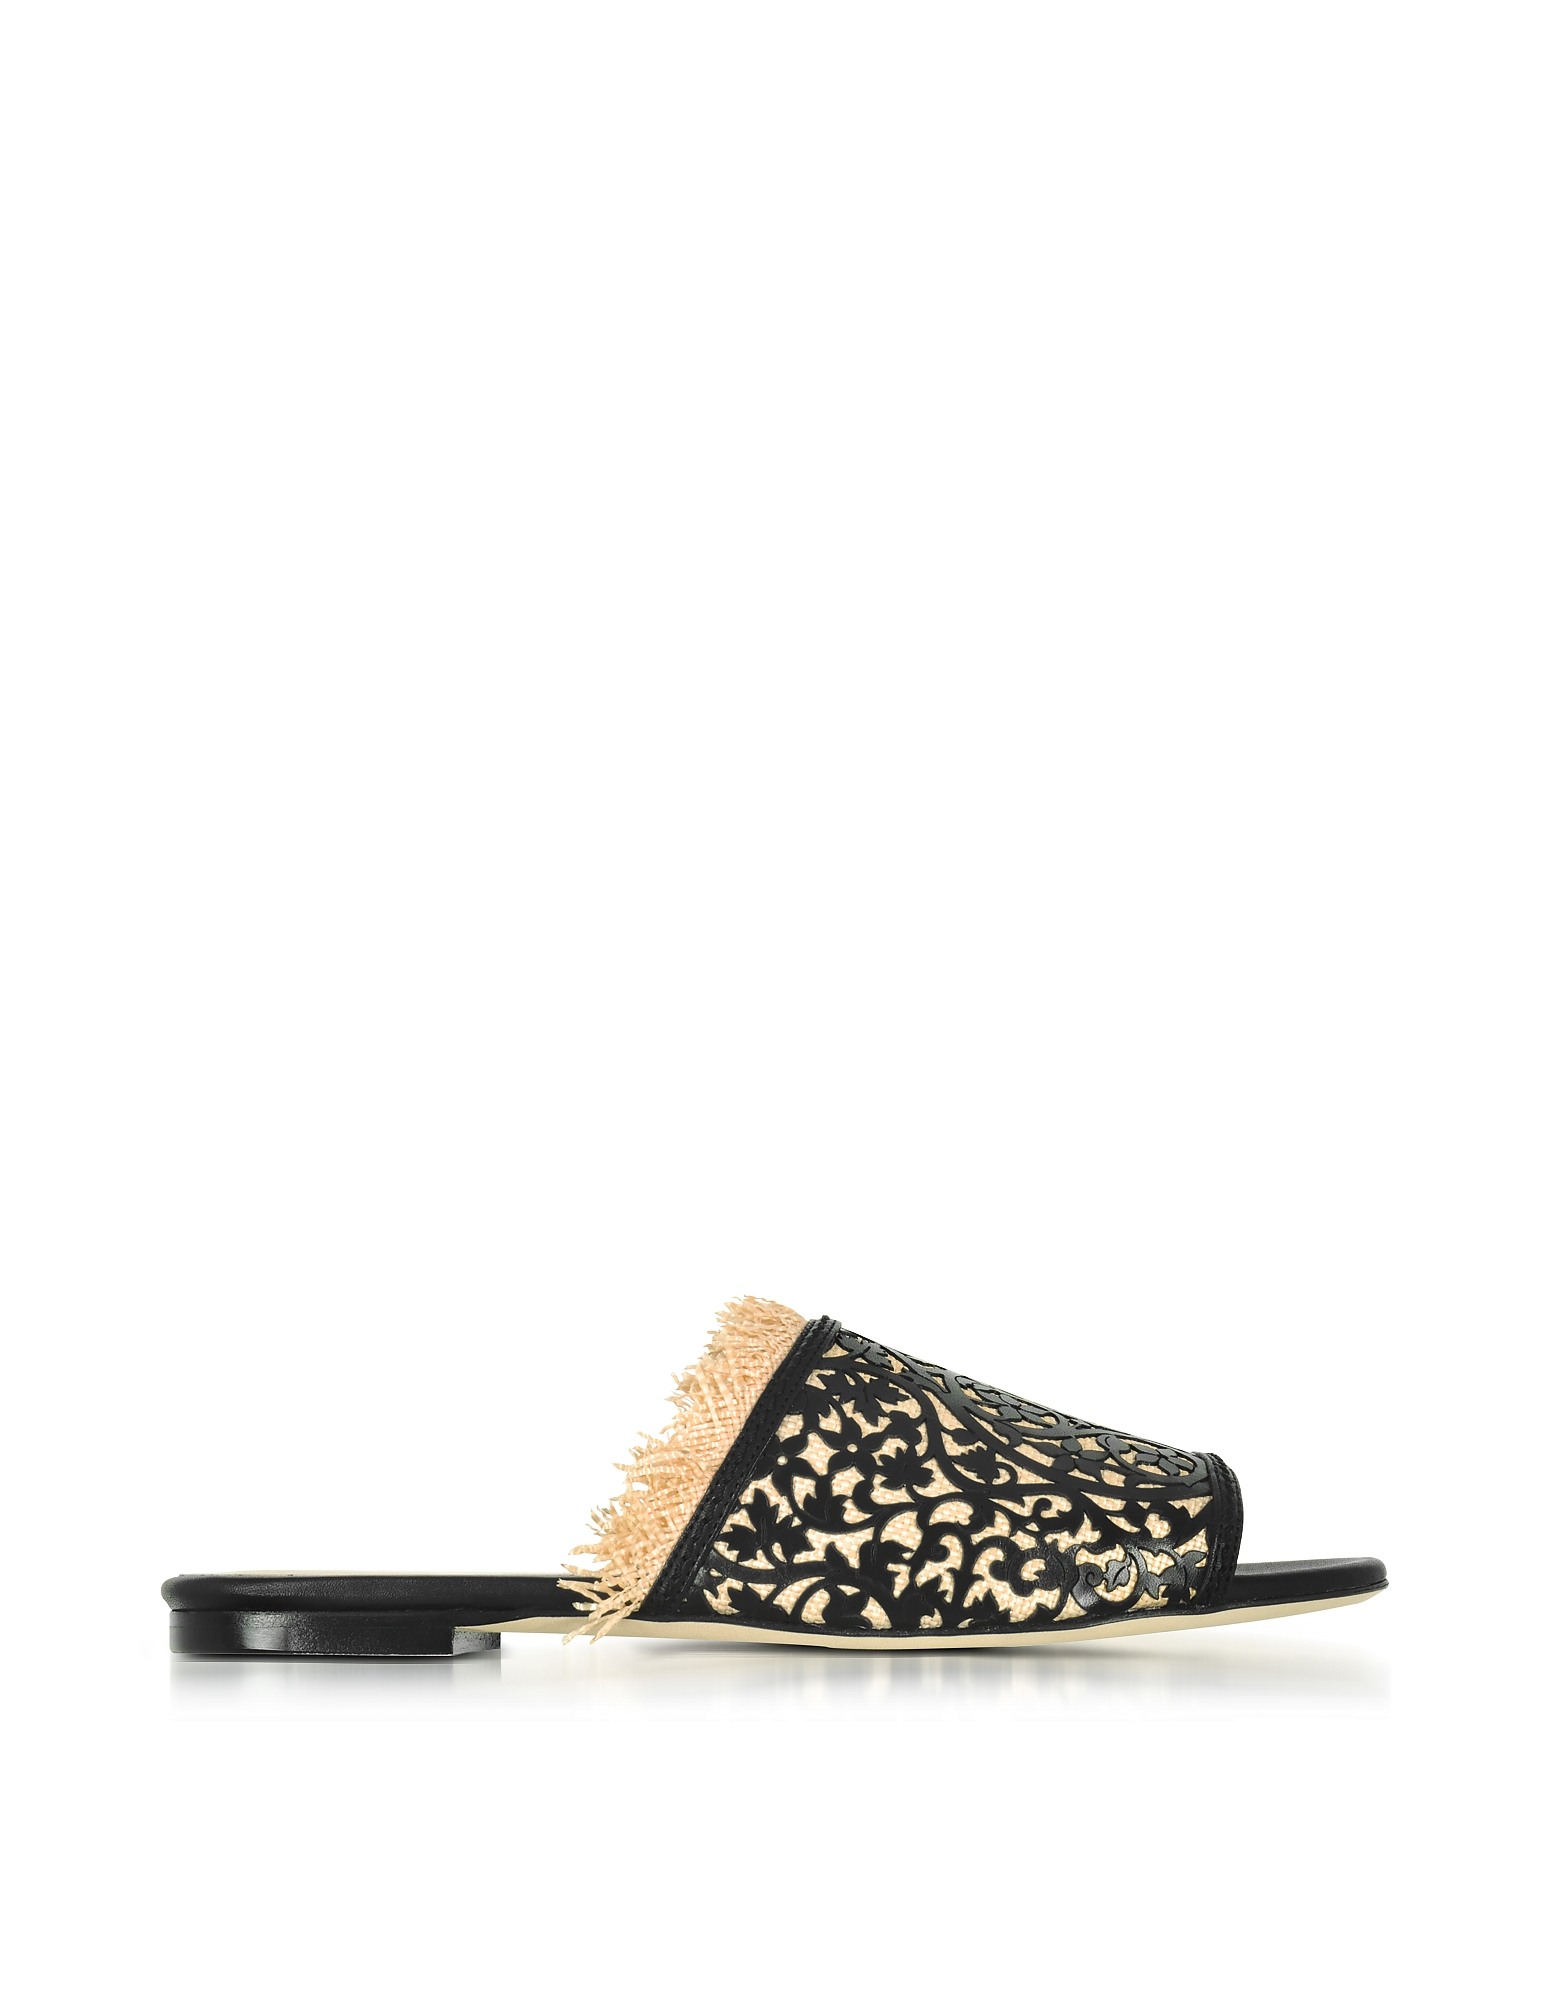 Oscar de la Renta Shoes, Charli Black & Beige Lasercut Leather and Raffia Slide Sandals